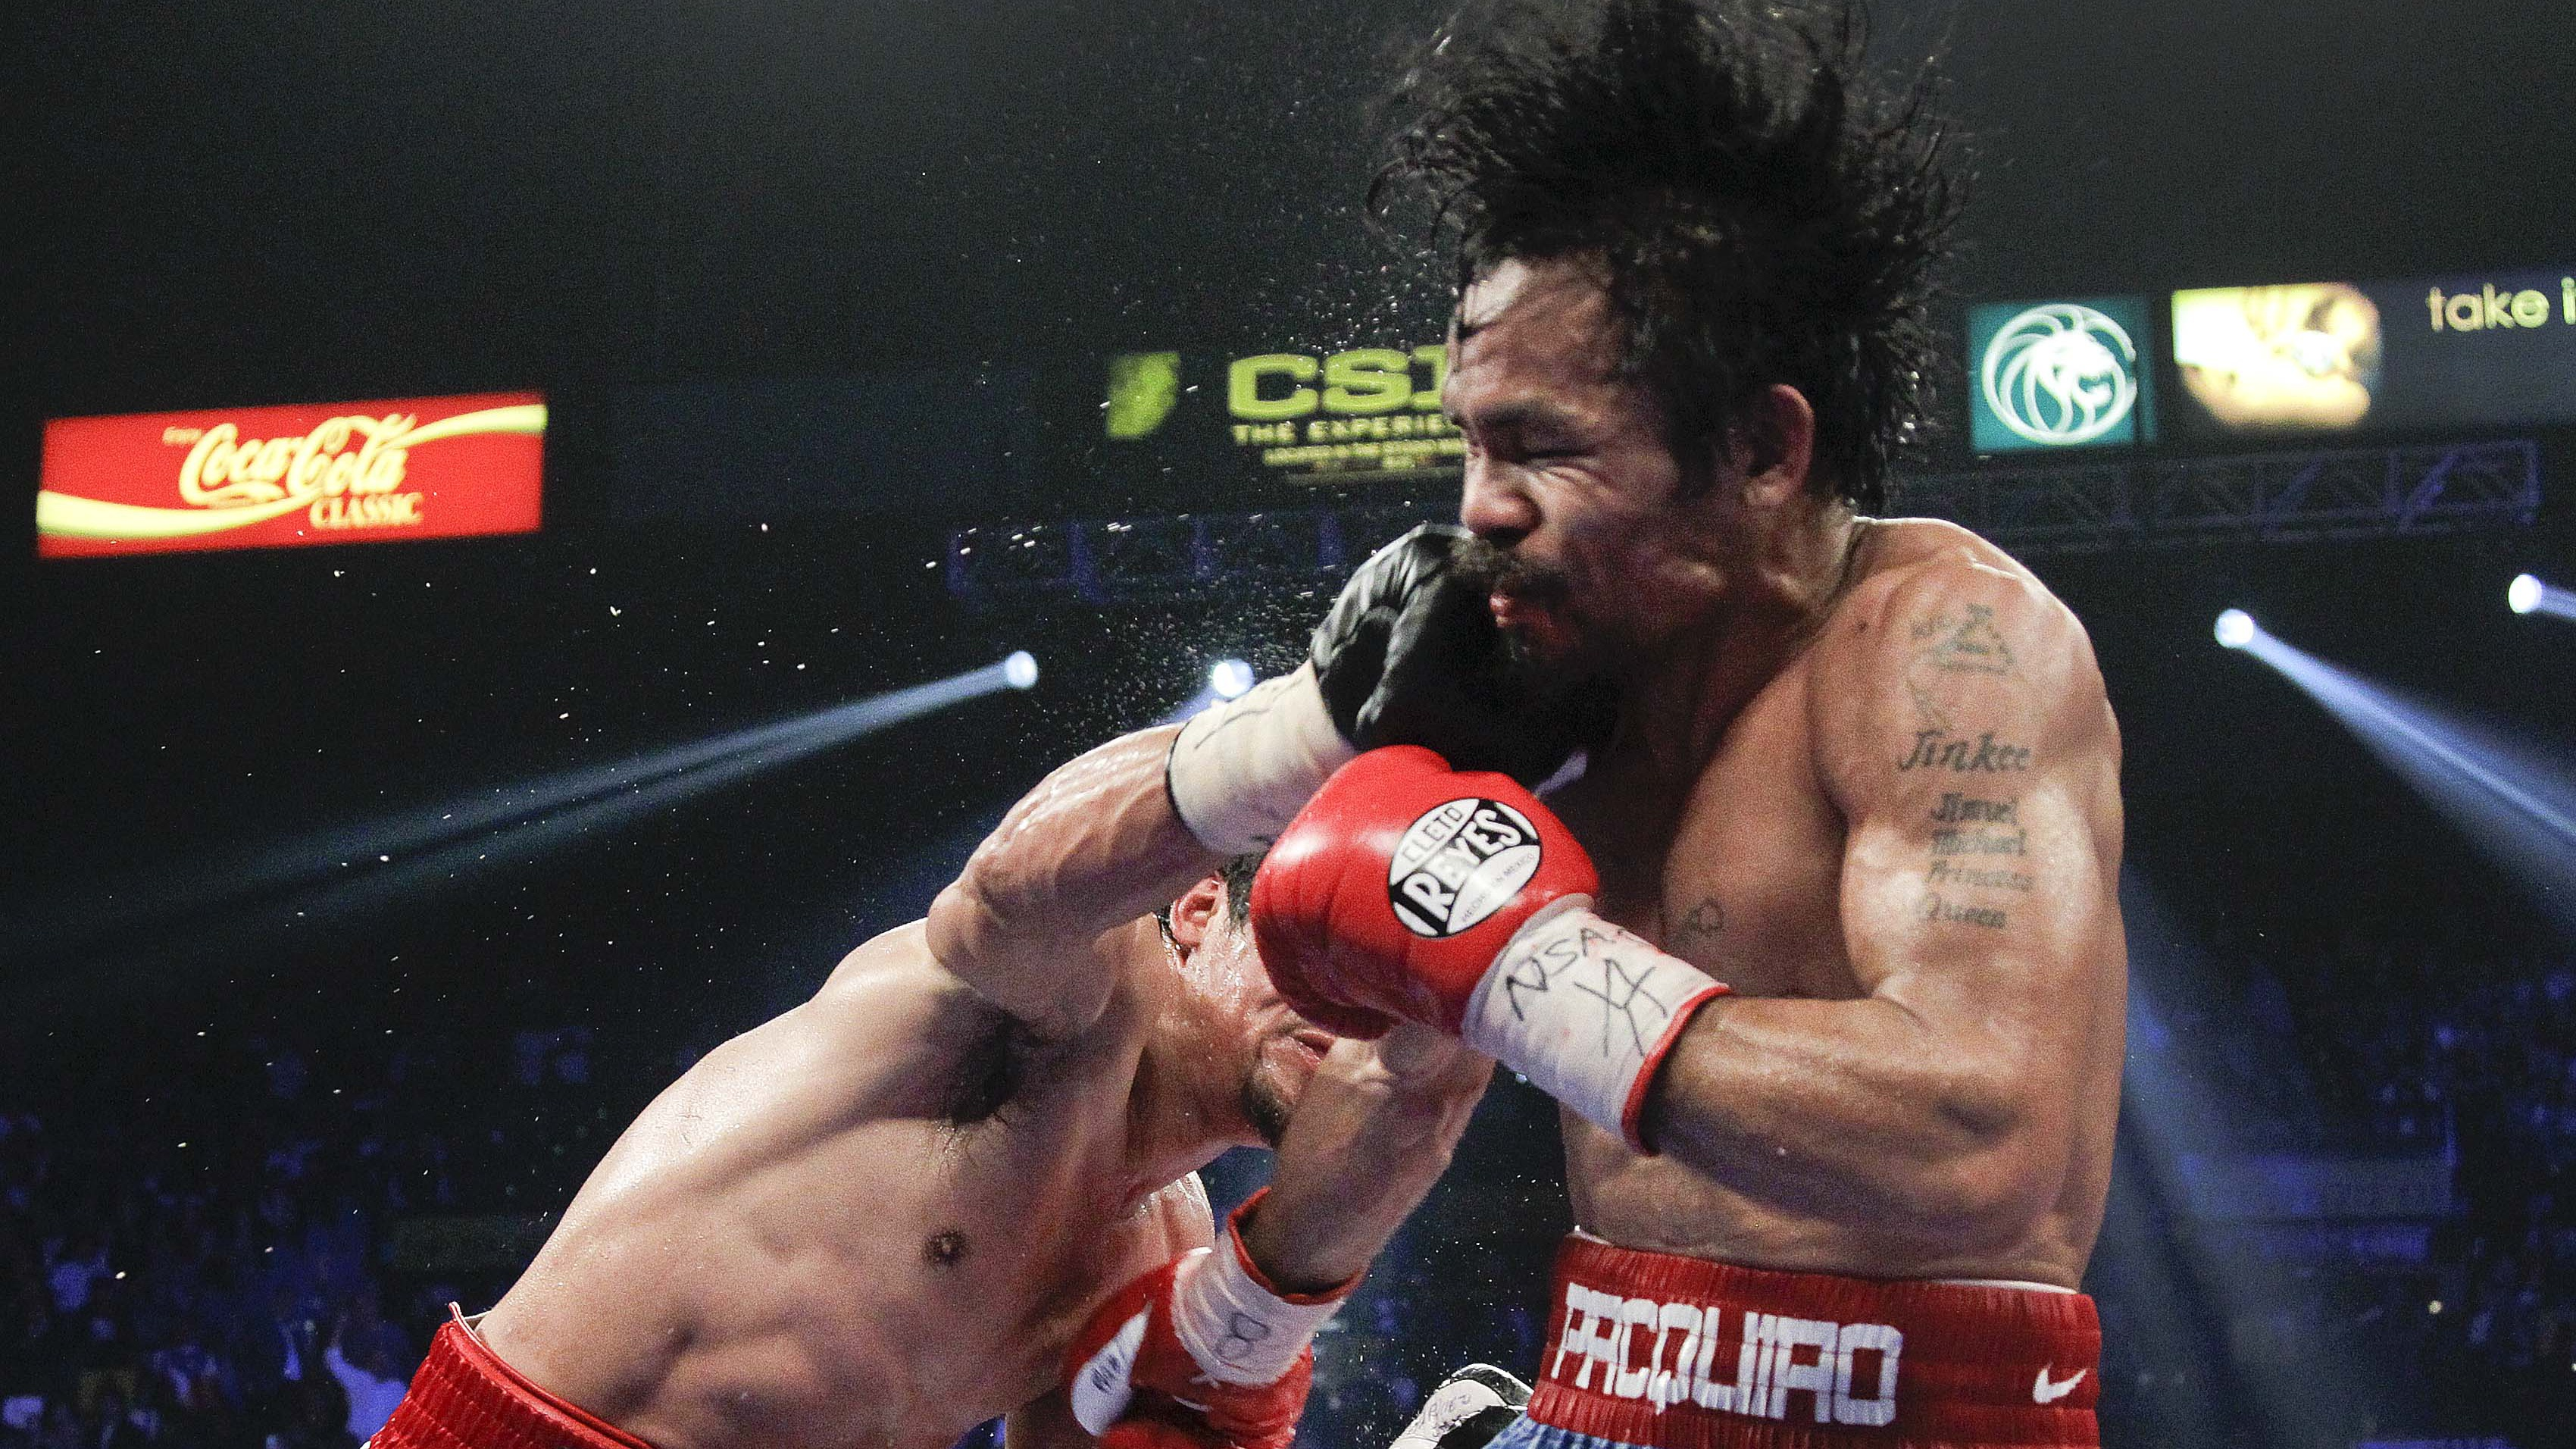 Juan Manuel Marquez, left, lands a punch against Manny Pacquiao during a WBO welterweight title fight Saturday, Nov. 12, 2011, in Las Vegas.